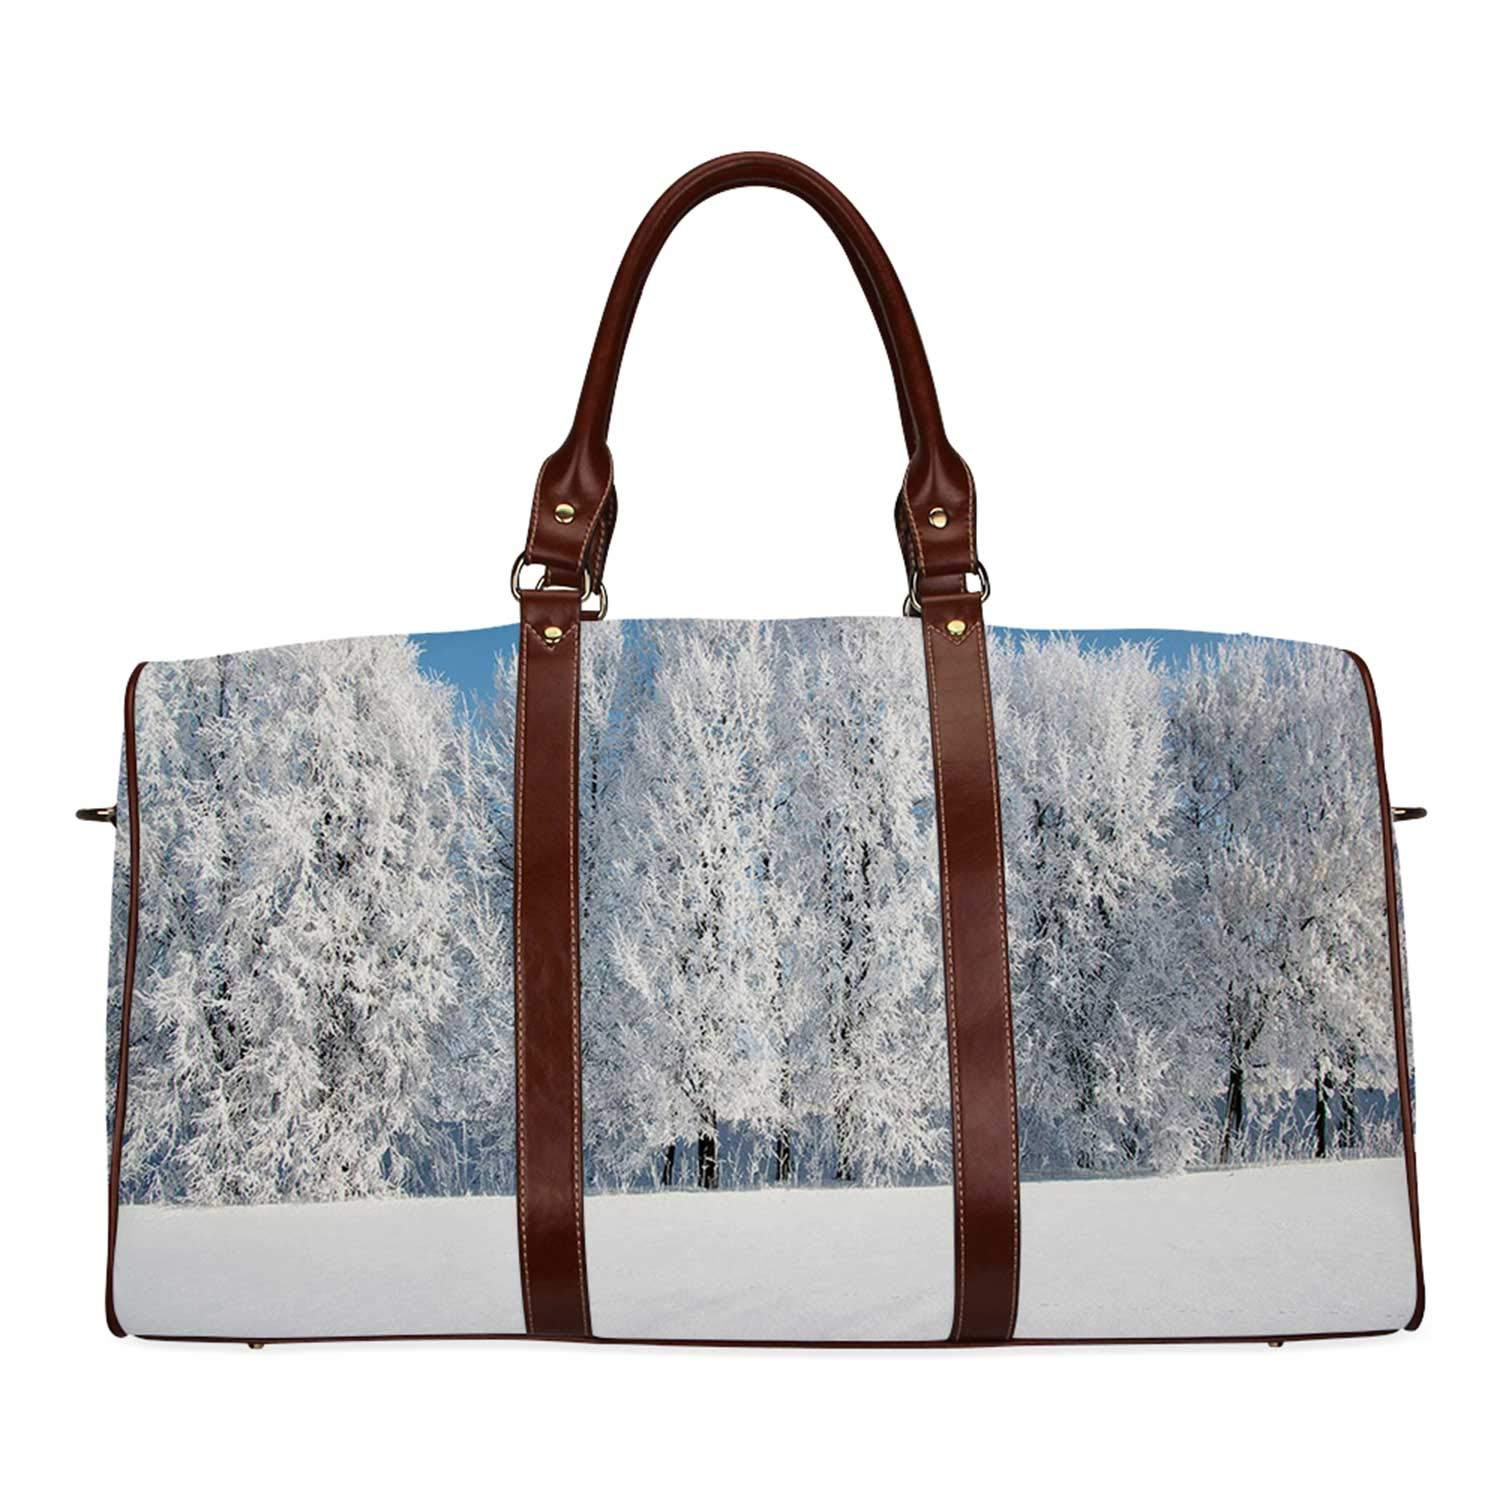 Winter Multi function Travel Bag,Frosted Trees in the Forest with Snowy Fields Cool Looking Seasonal Photography for Dating,18.62''L x 8.5''W x 9.65''H by YOLIYANA